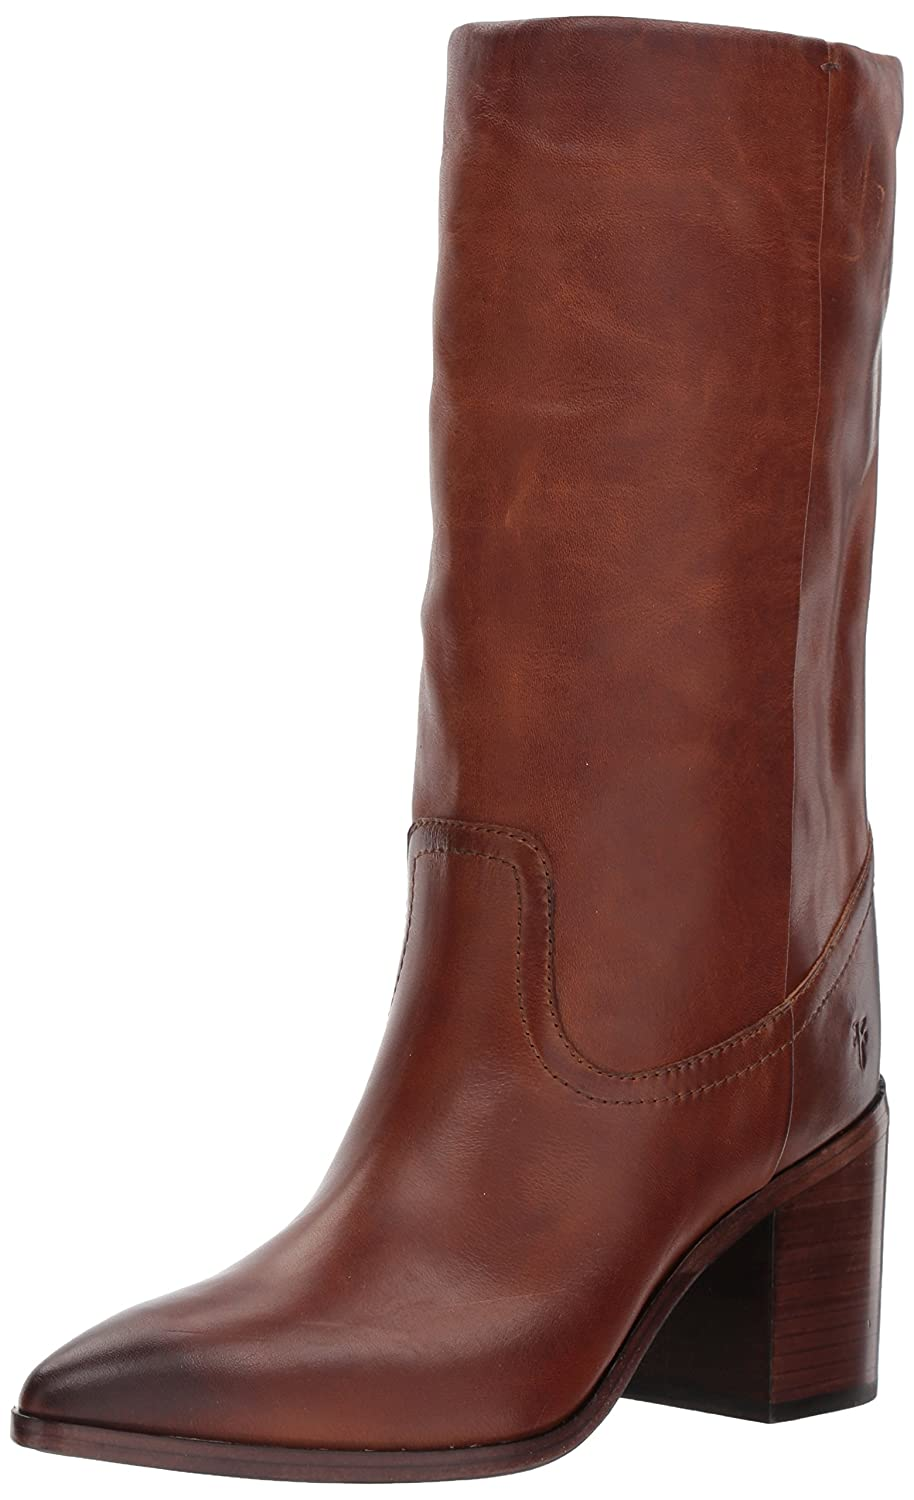 FRYE Women's Flynn Mid Pull on Boot B01N81A8F4 6.5 B(M) US|Cognac